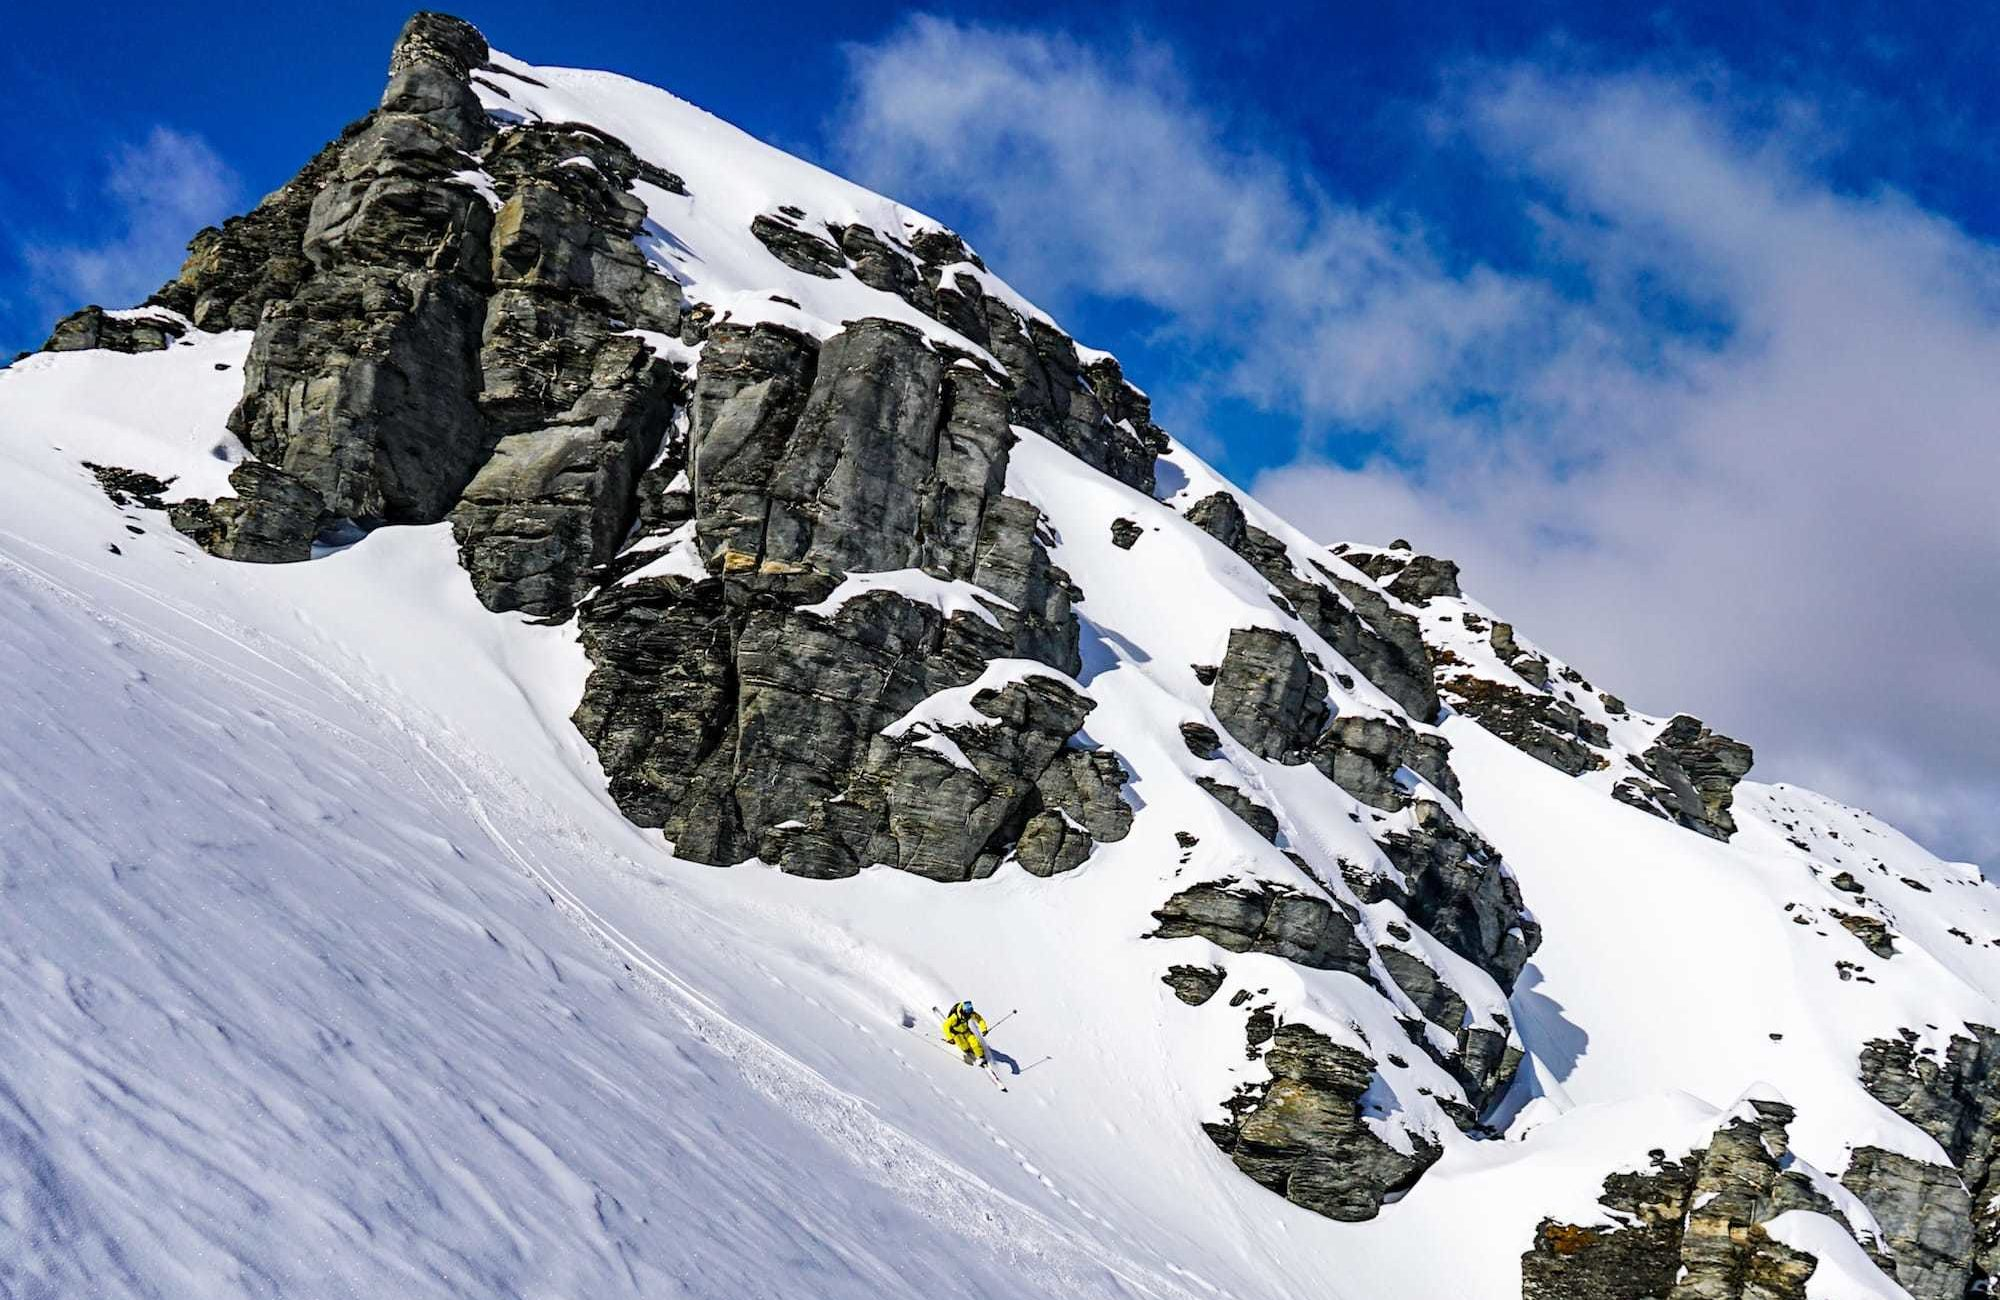 Treble Cone Backcountry Skiing